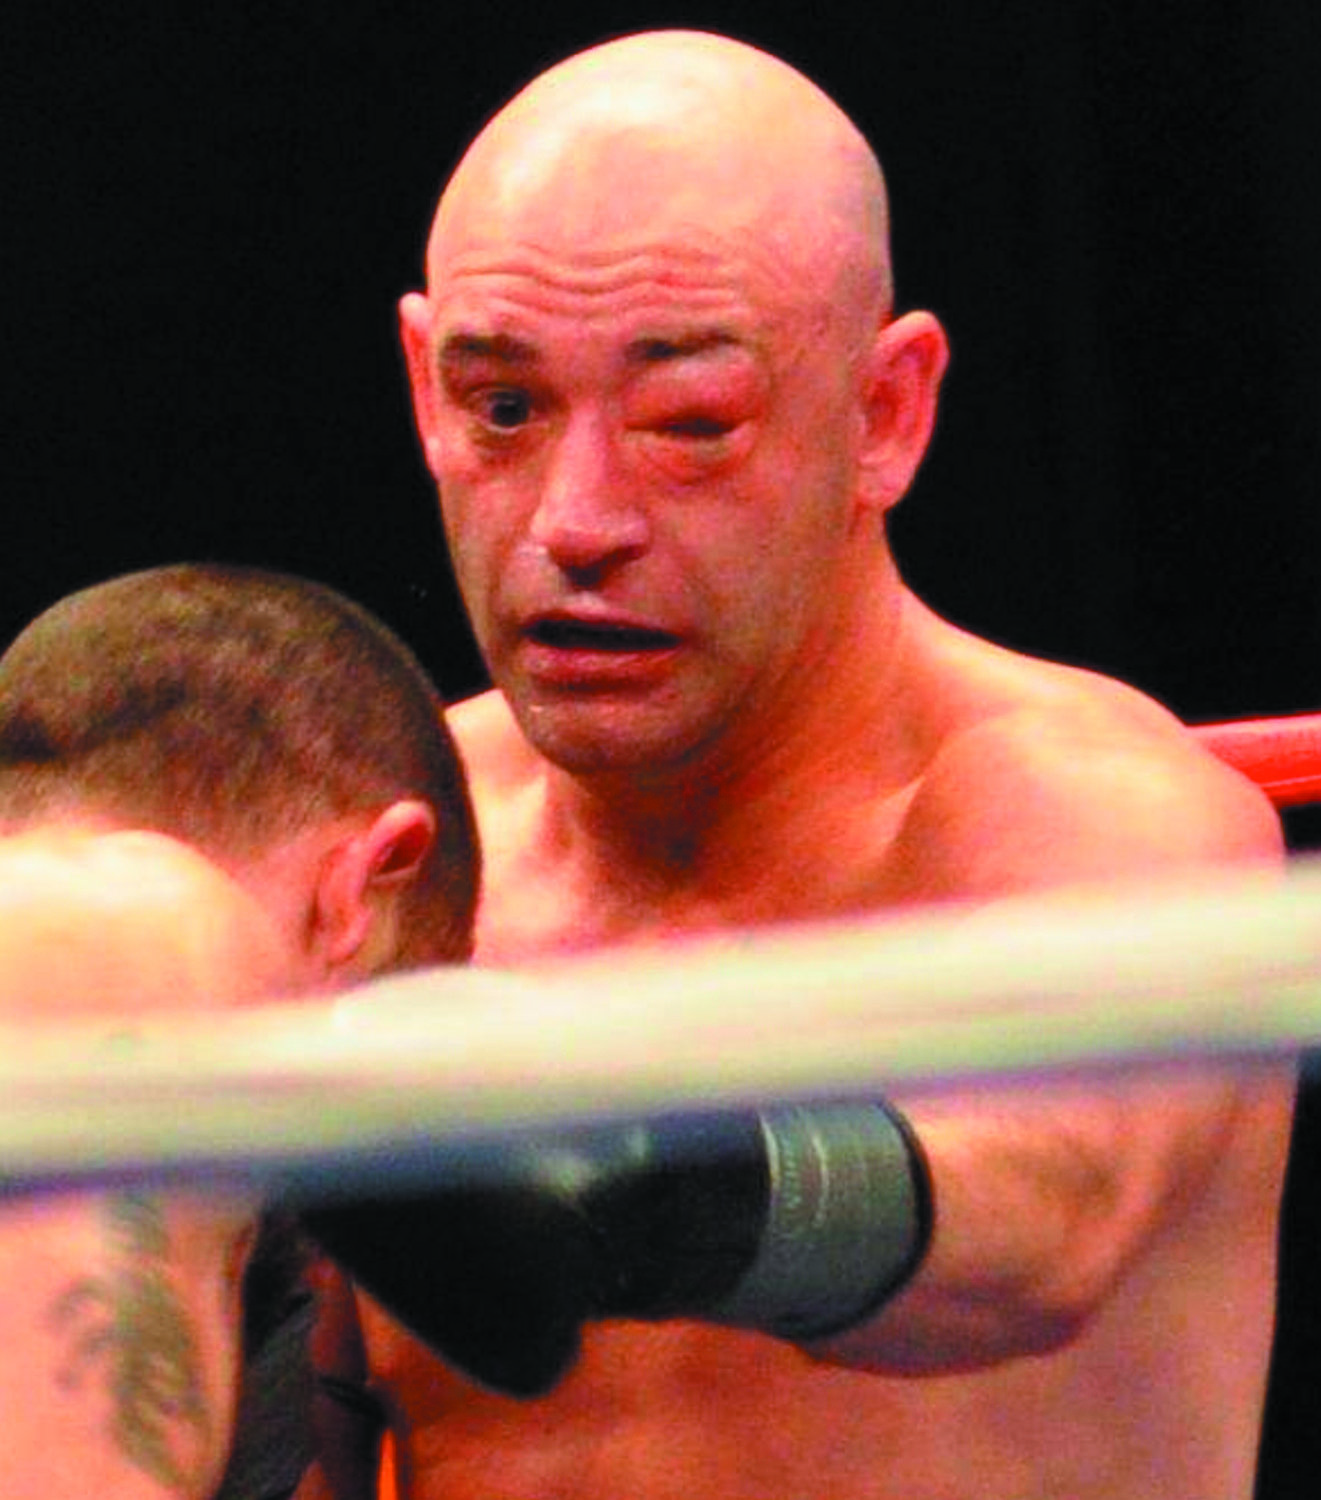 BATTLE SCARS: Pictured is Benny Costantino during a